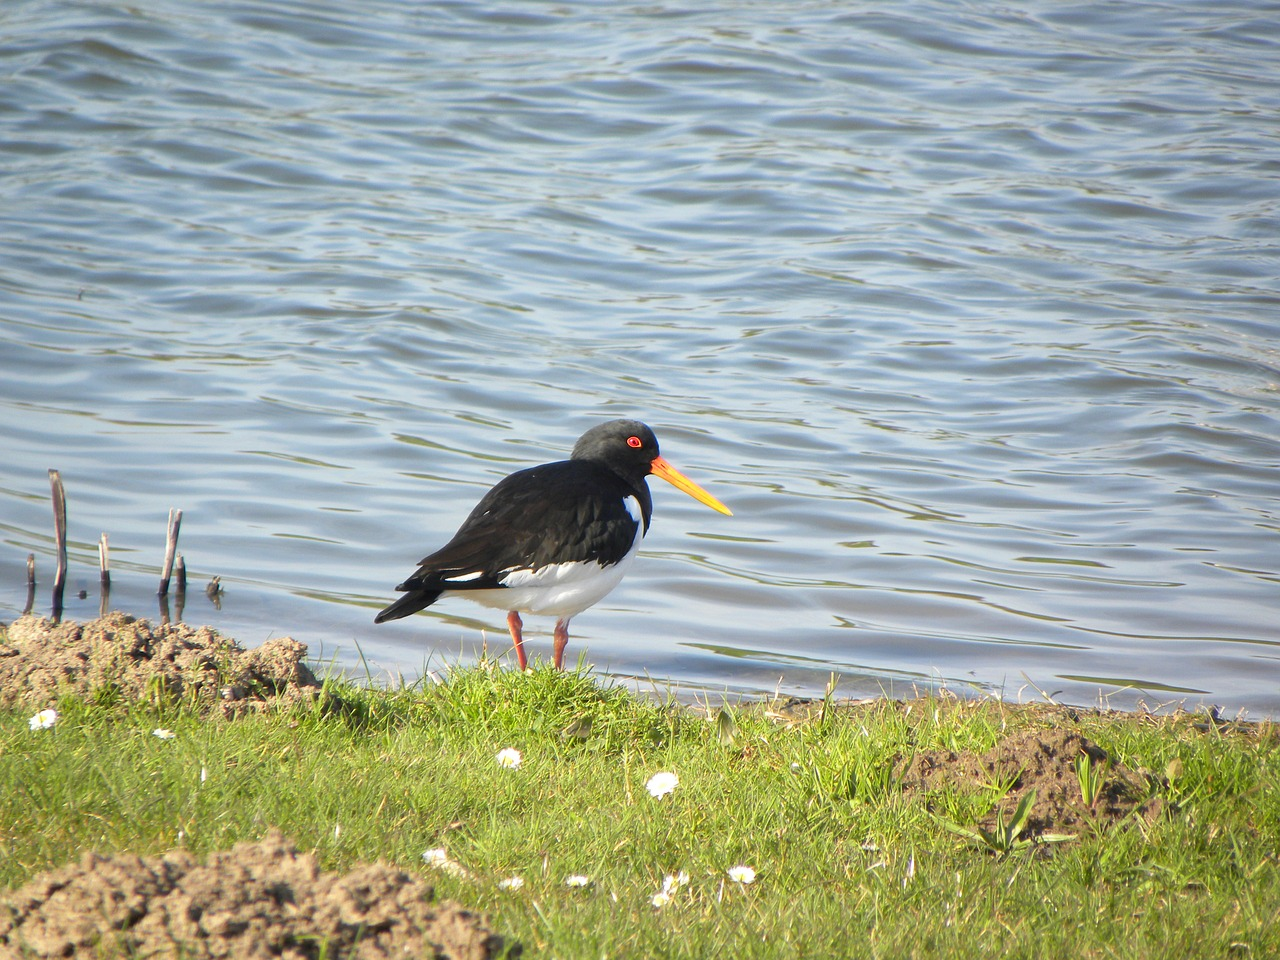 oystercatcher bird stilt-walker free photo